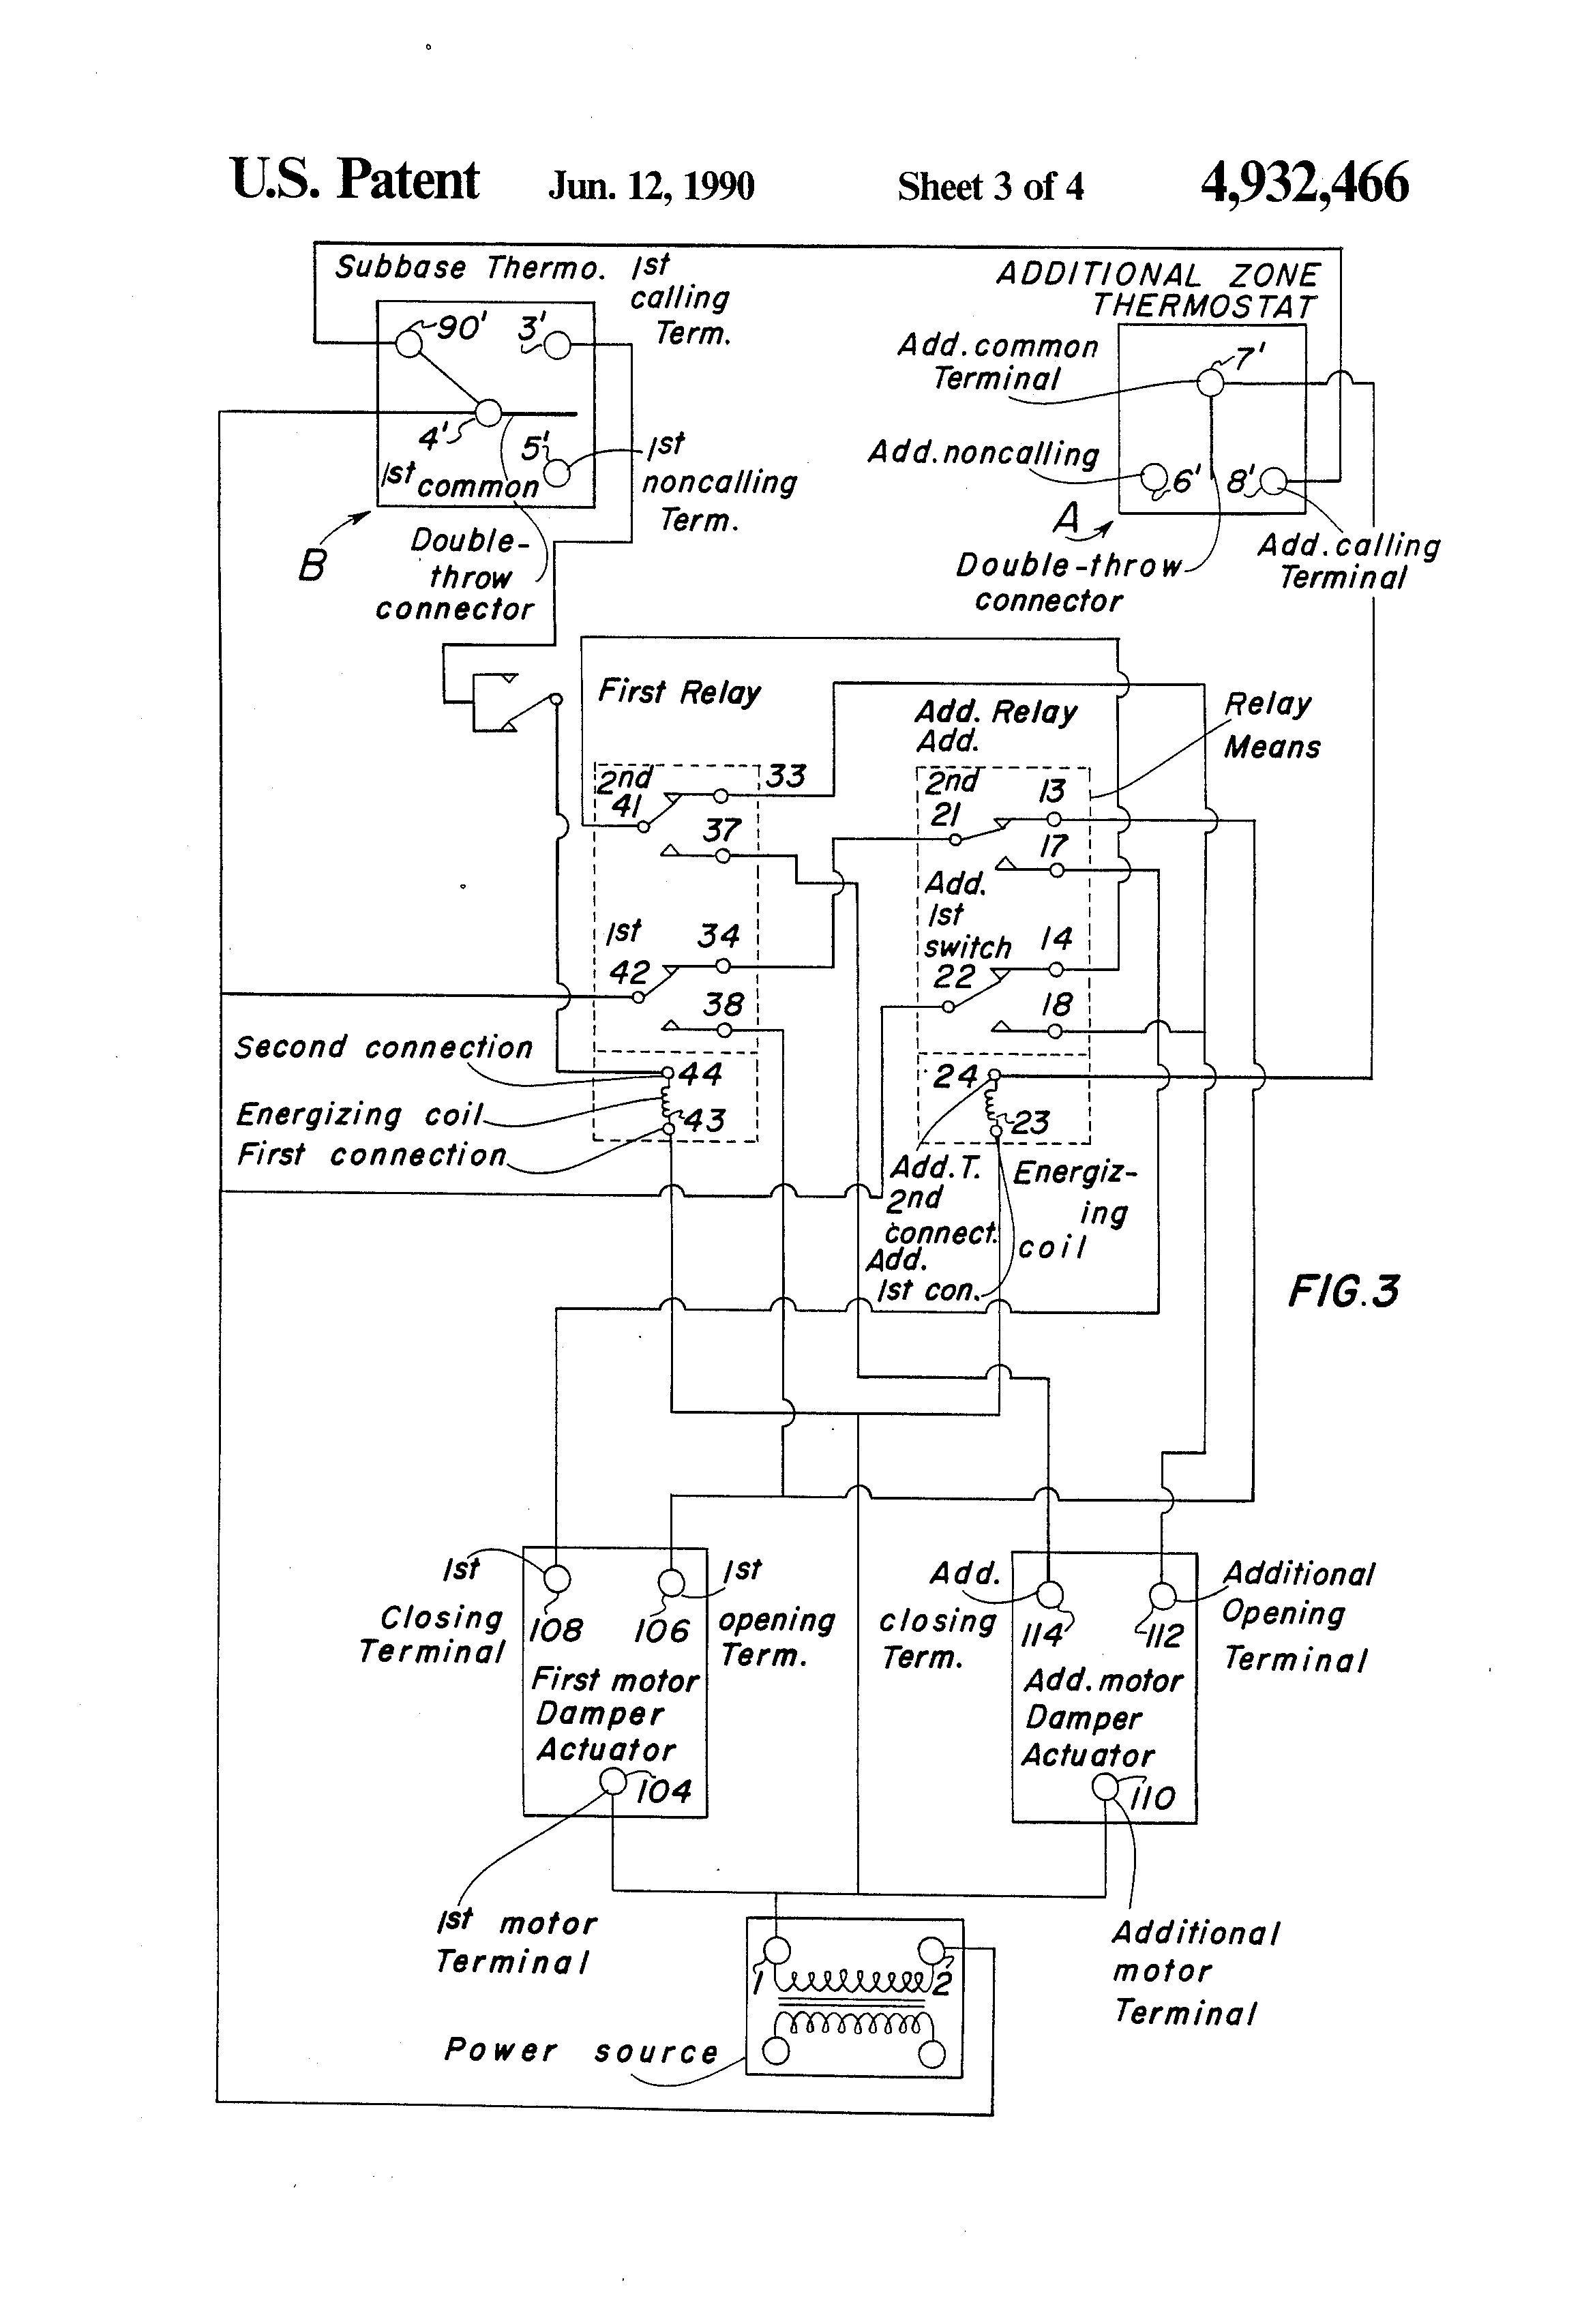 Us4932466 Relay Panel And System For Controlling Common Terminal On Patent Drawing